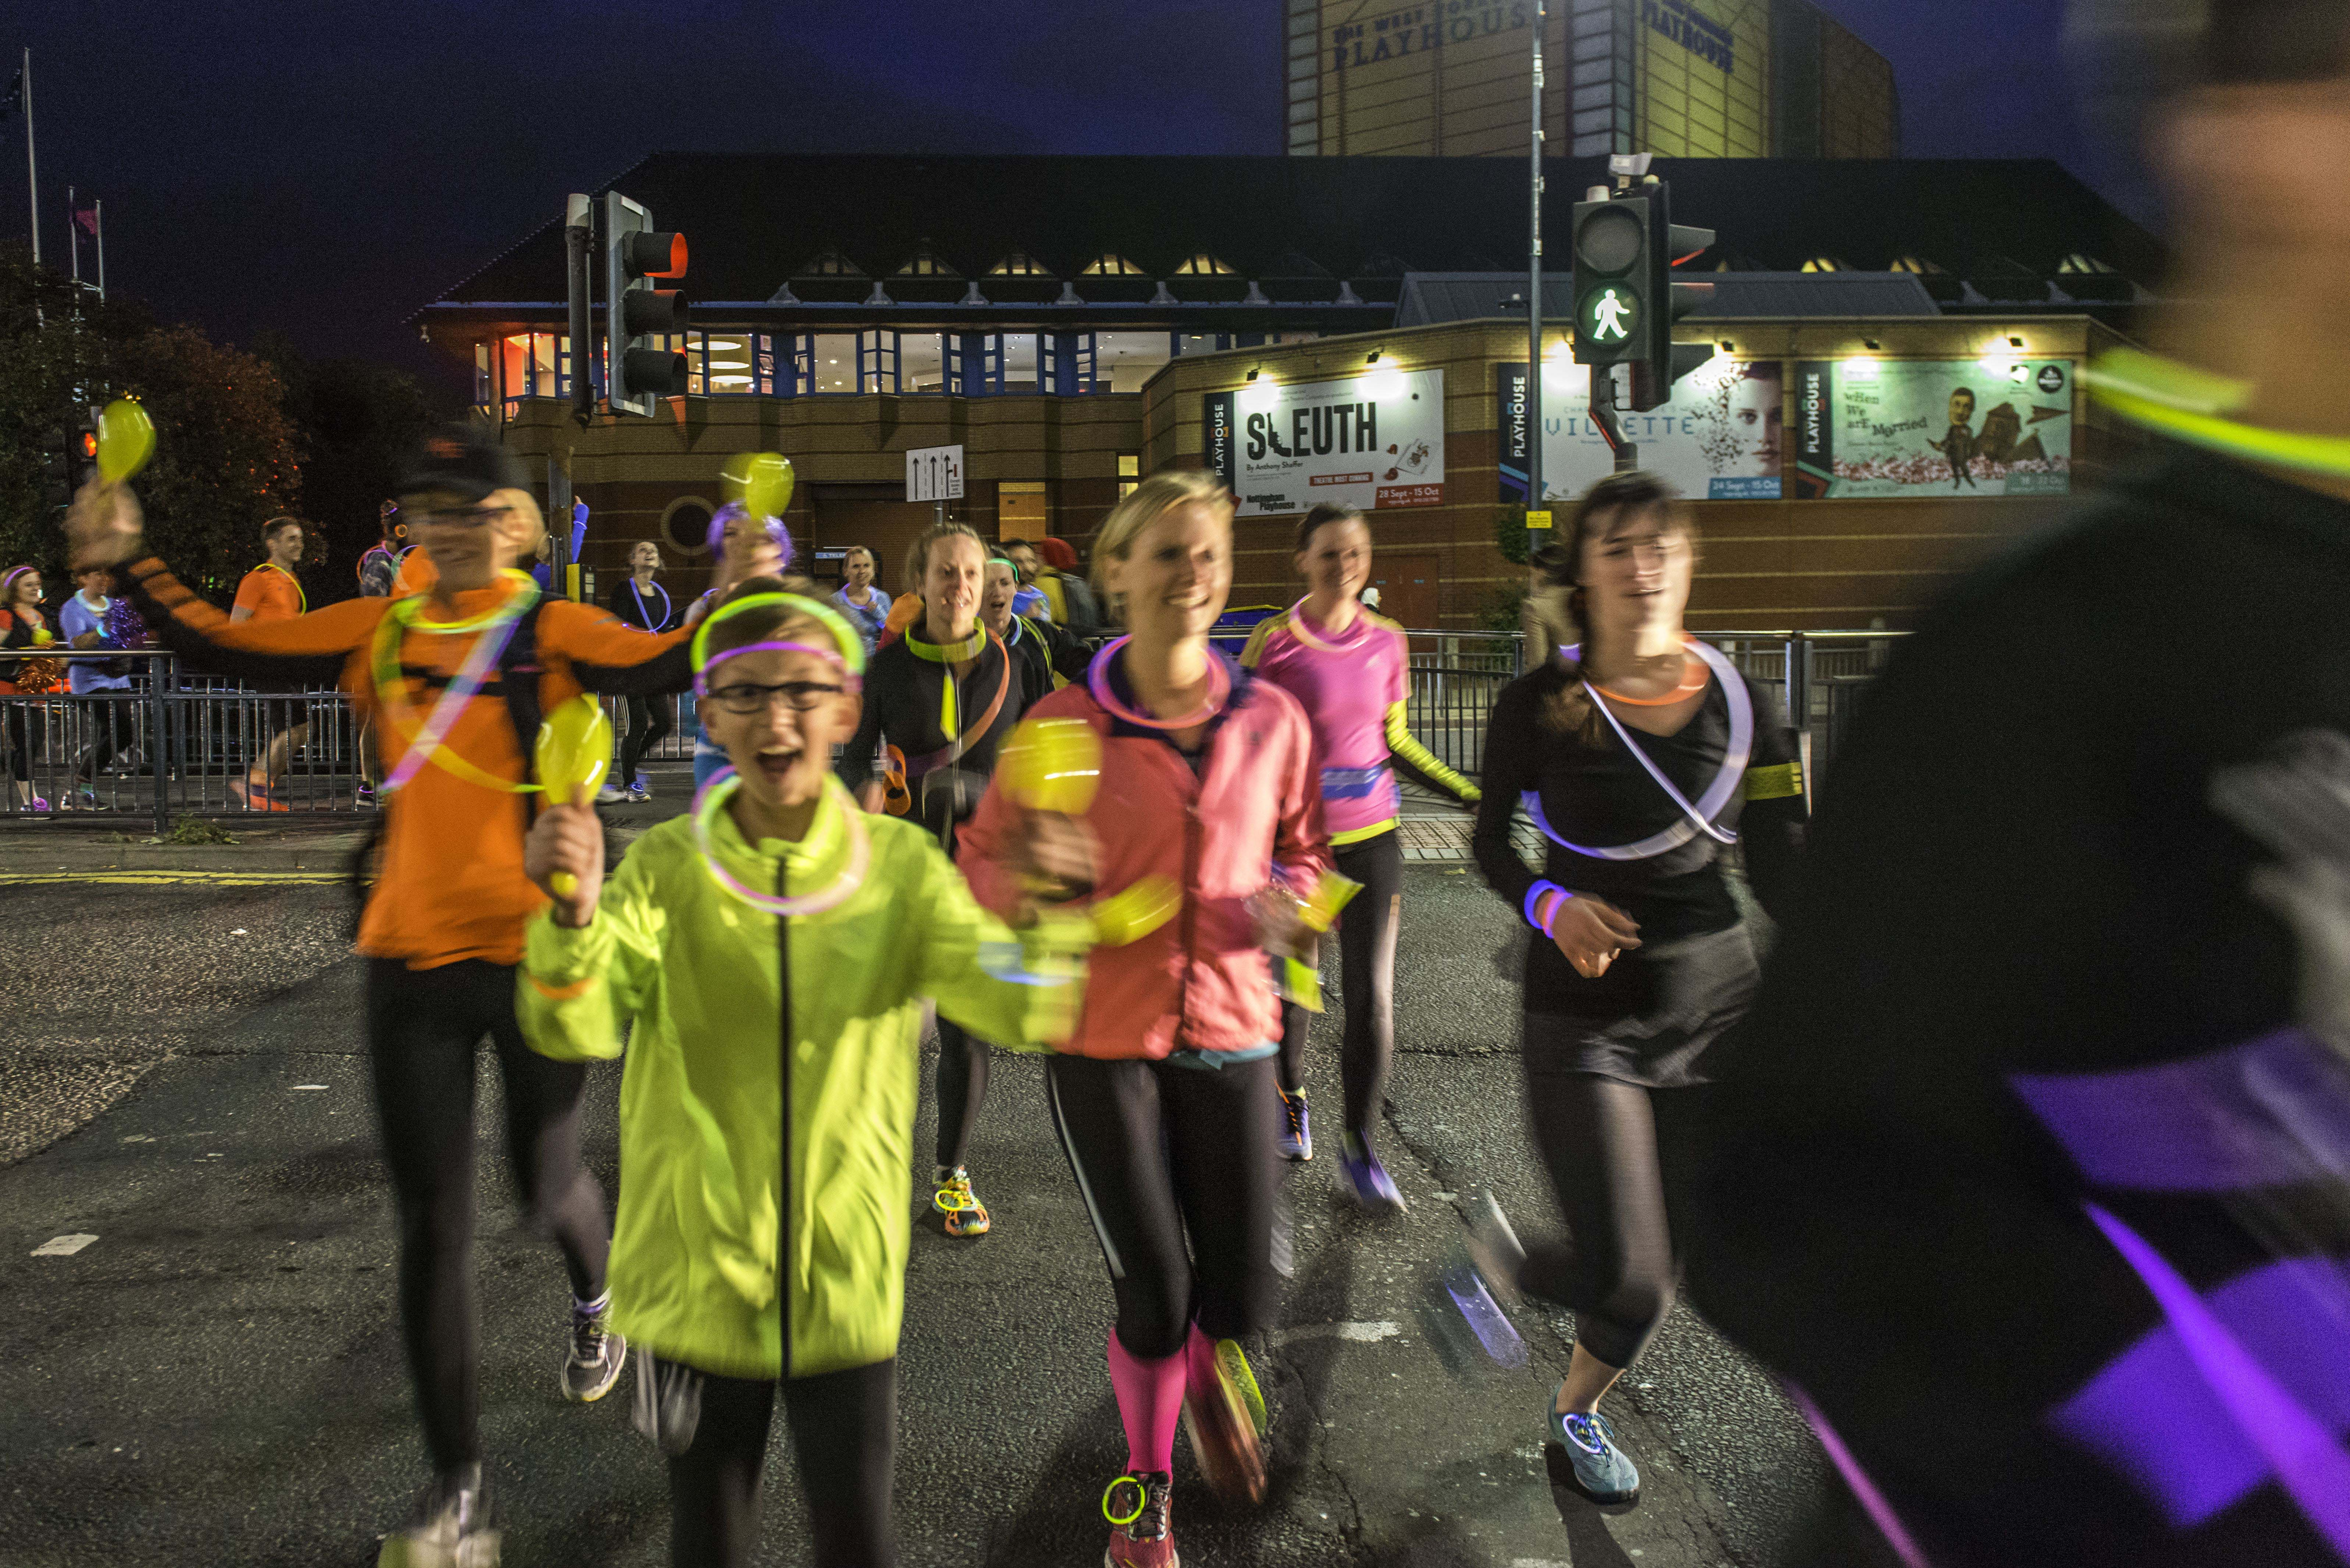 light night leeds art runs, veggie runners art runs, light night runs